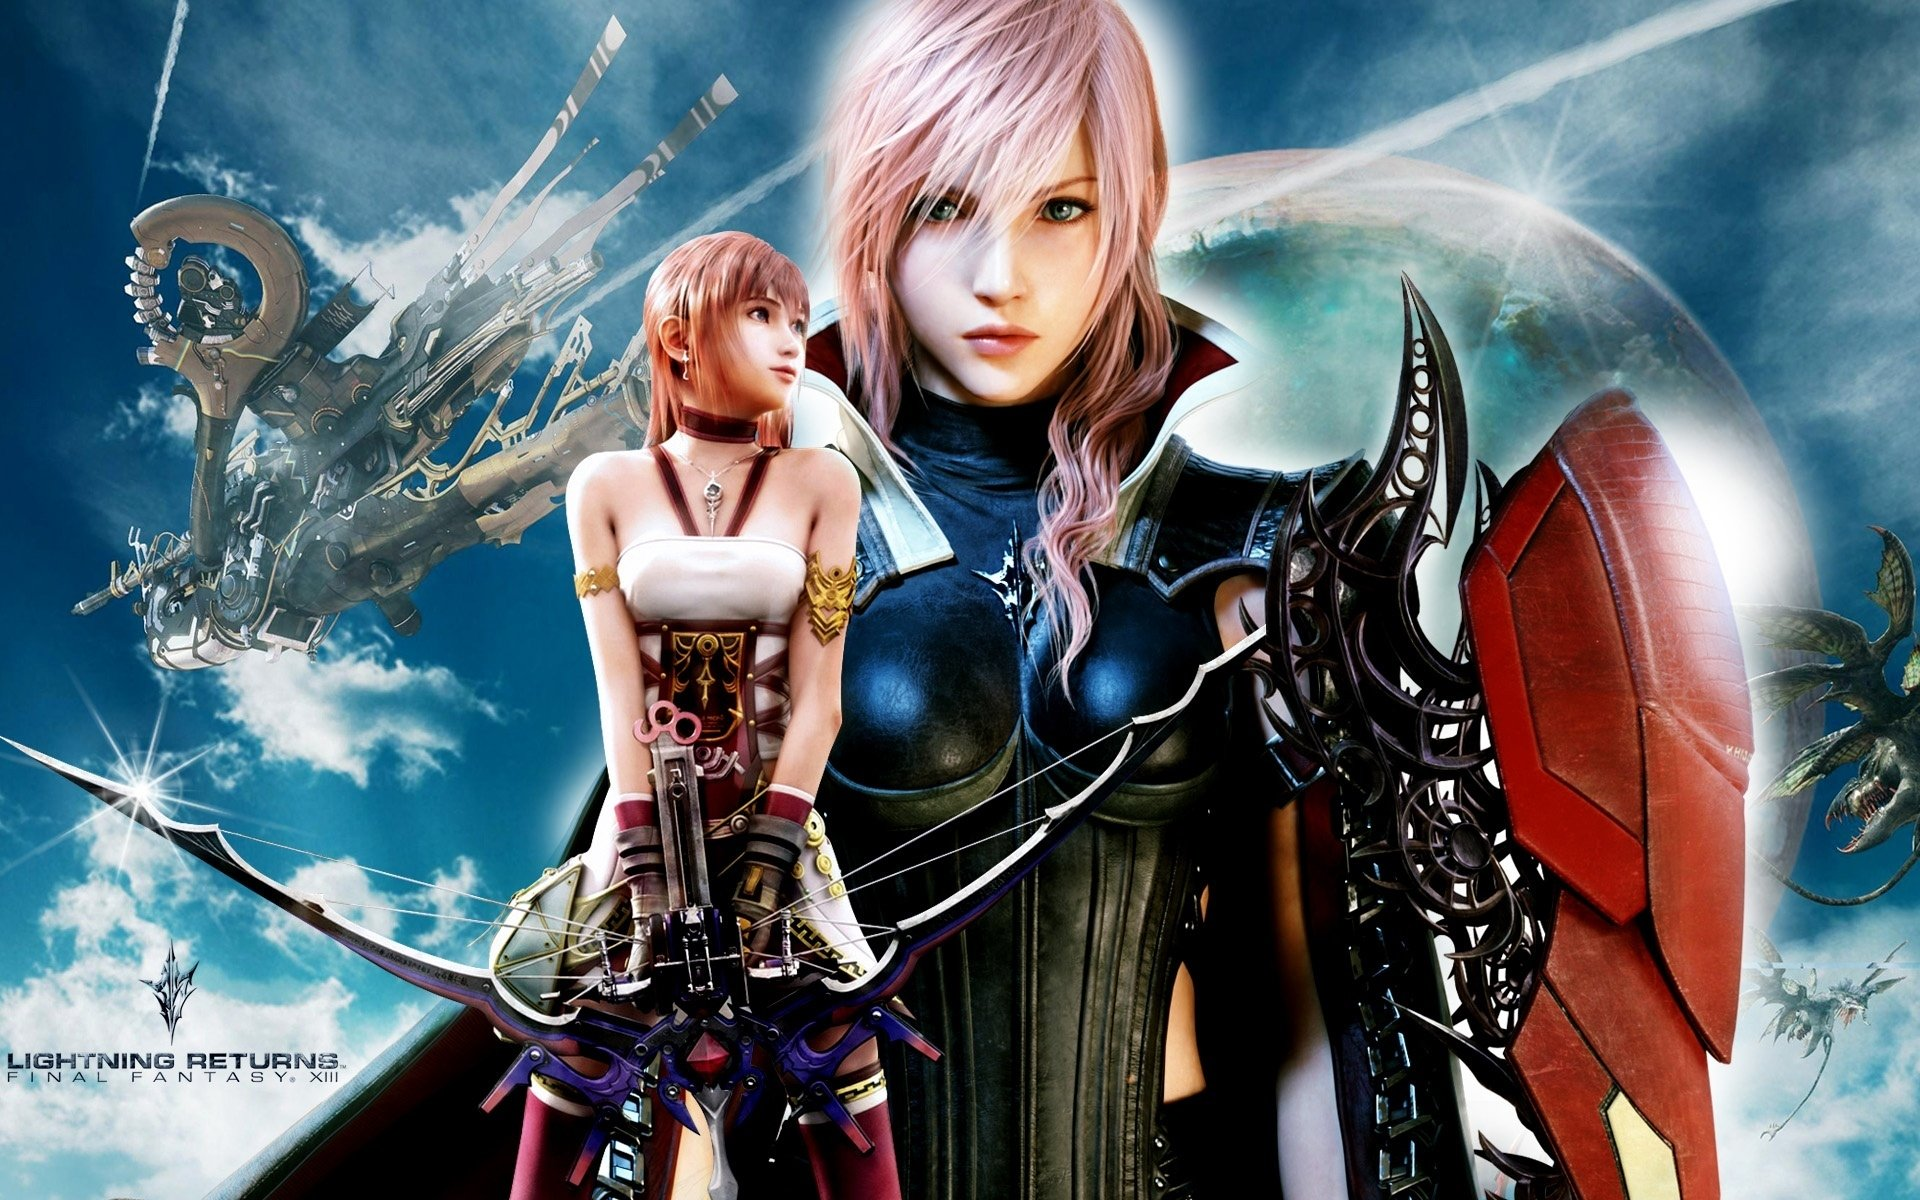 14 Lightning Returns Final Fantasy Xiii Hd Wallpapers